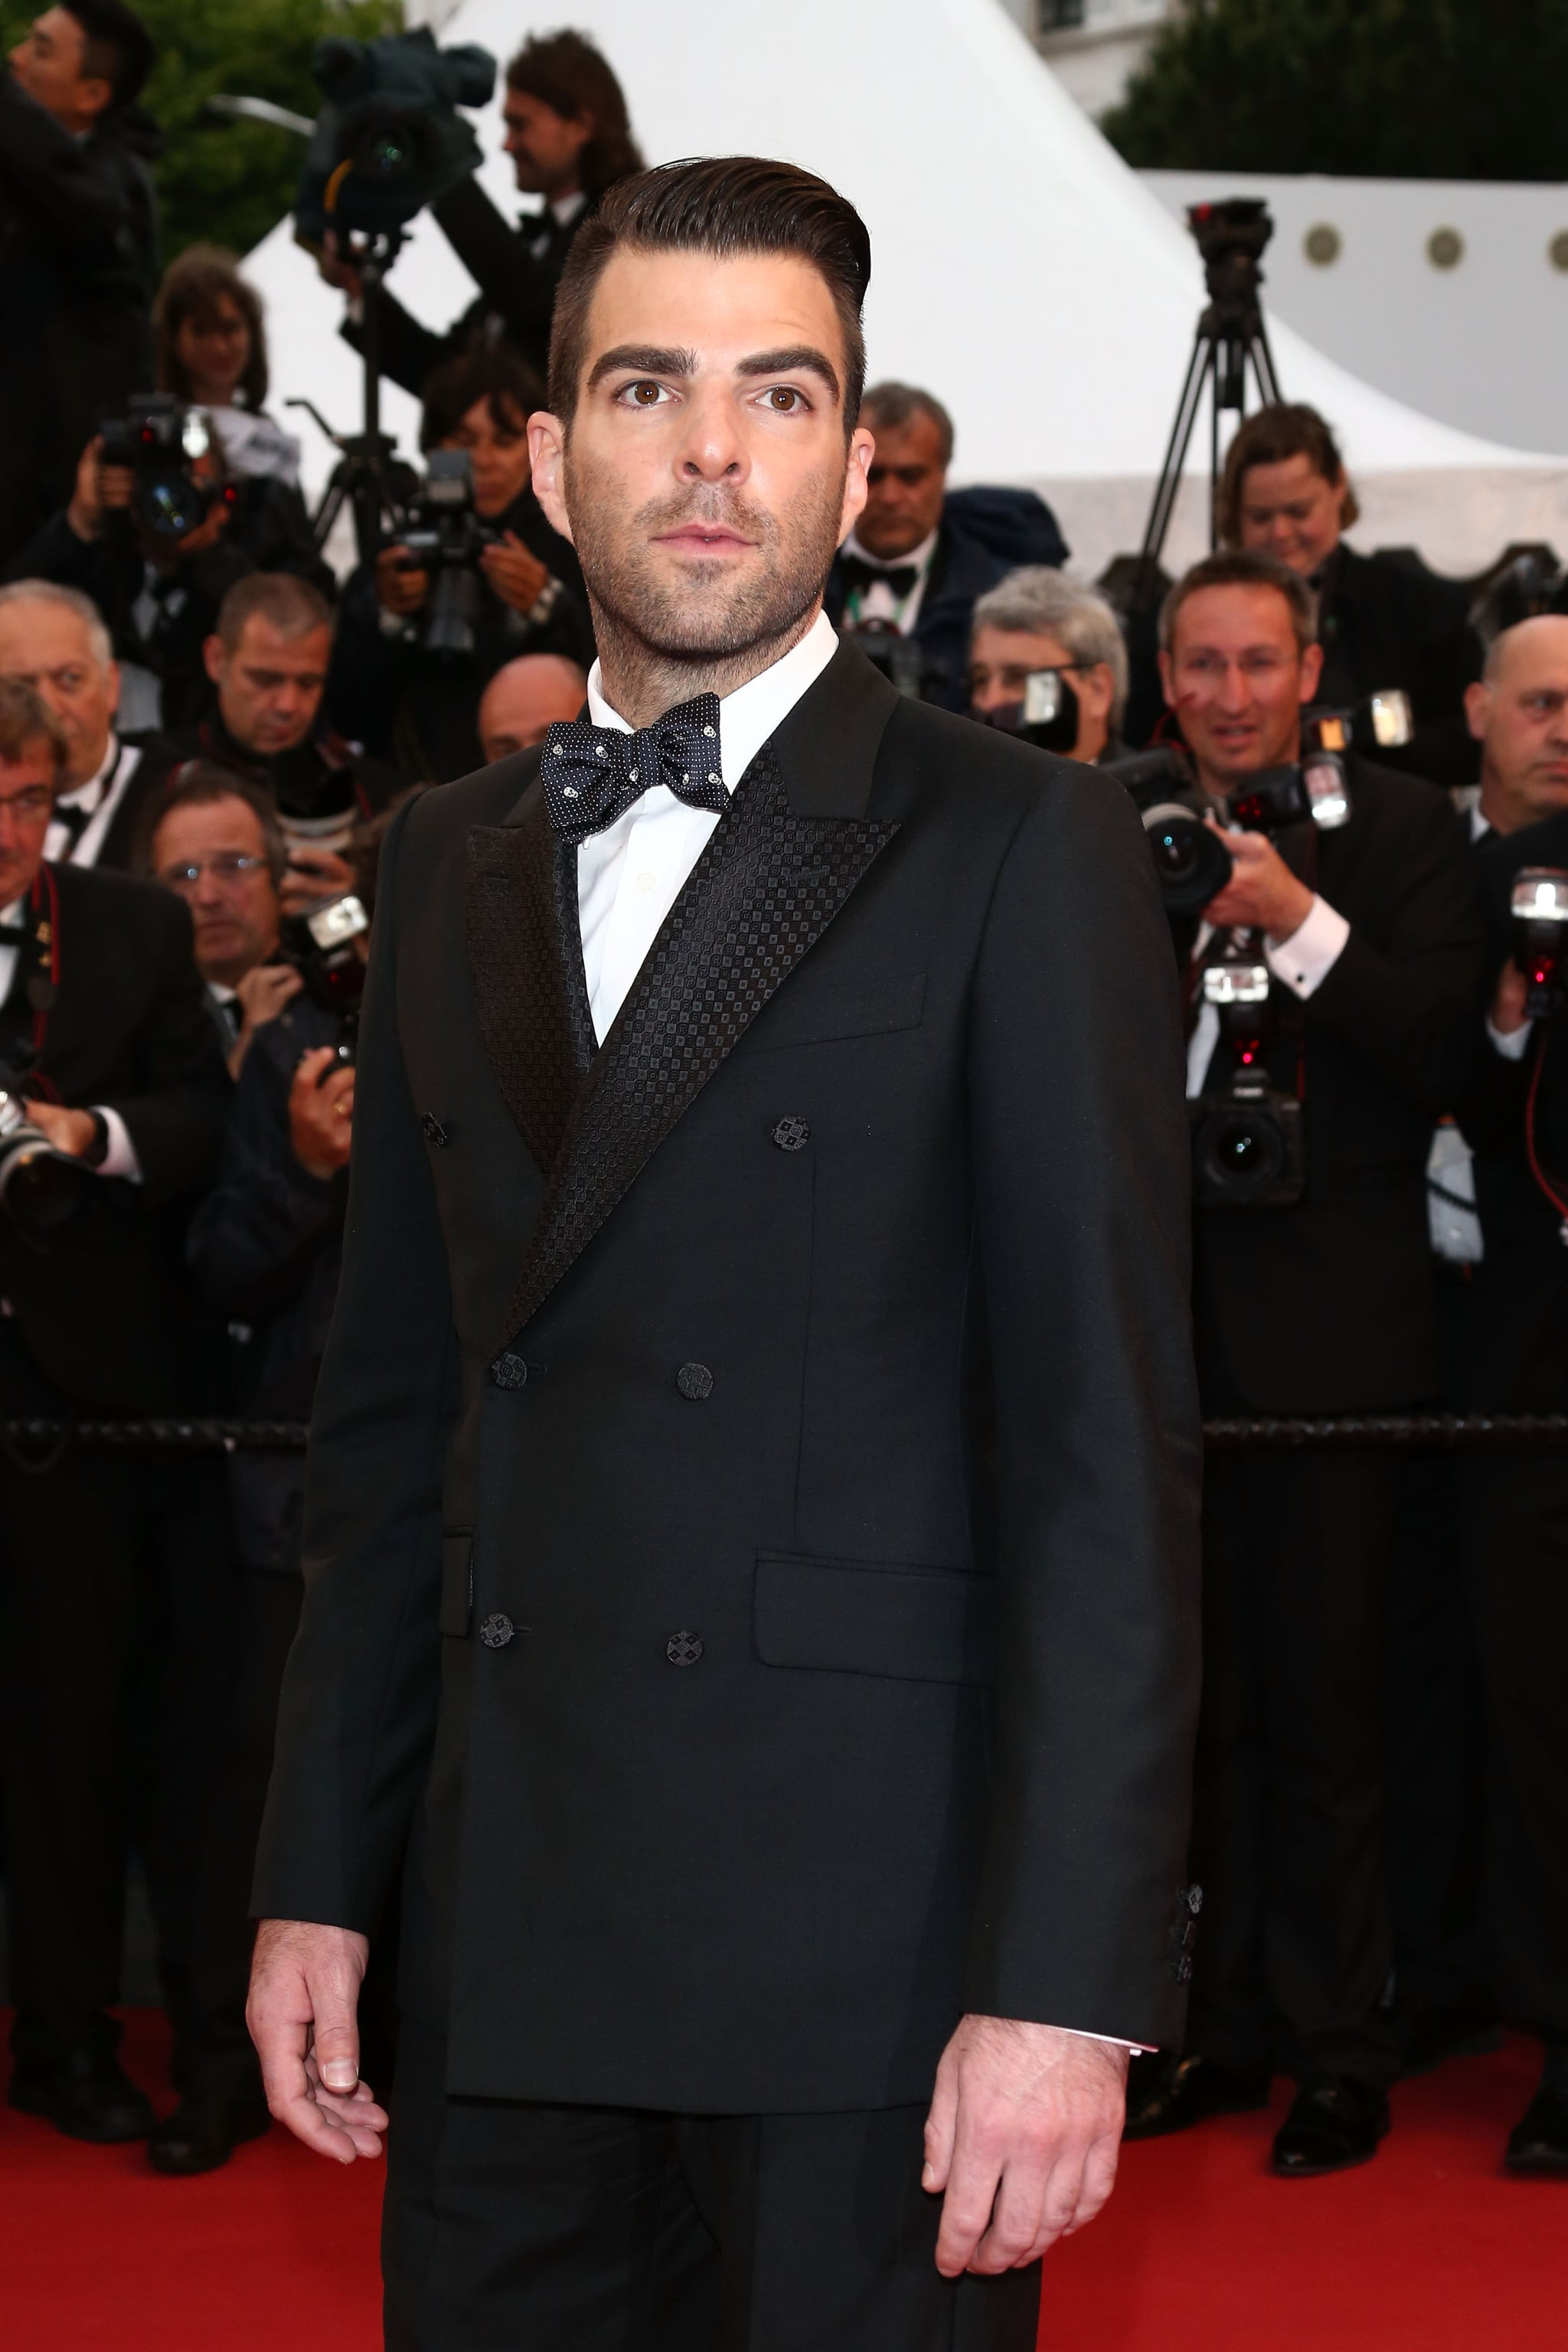 Zachary Quinto was on hand for the All Is Lost premiere in Cannes on Wednesday.